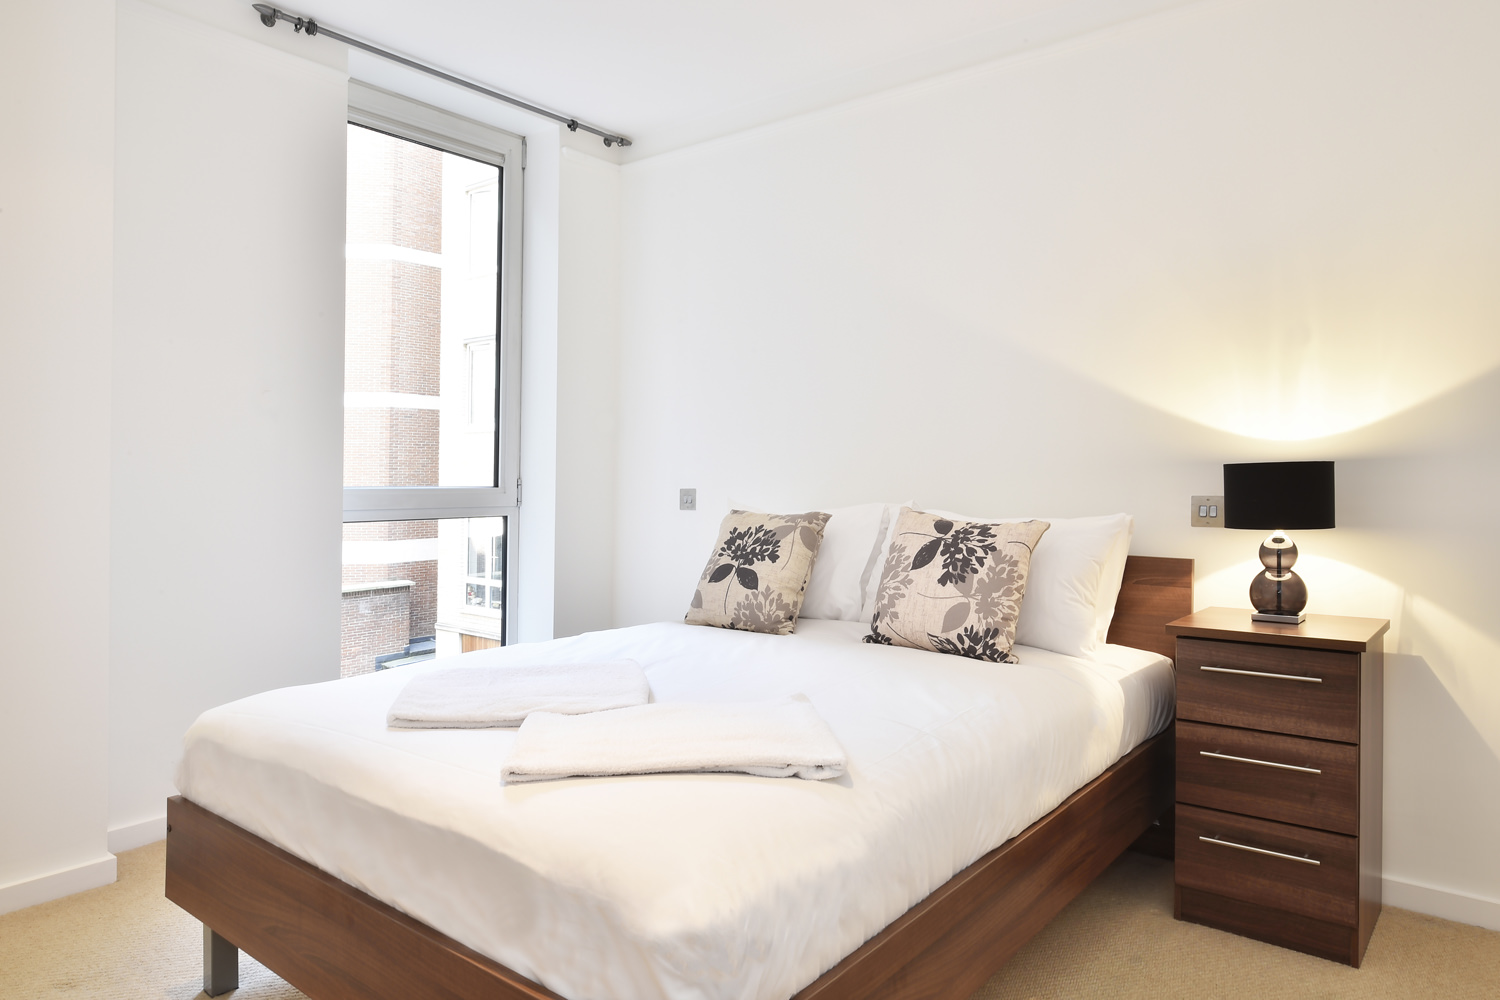 1 Bedroom Apartment St Pauls Executive Quarters Image